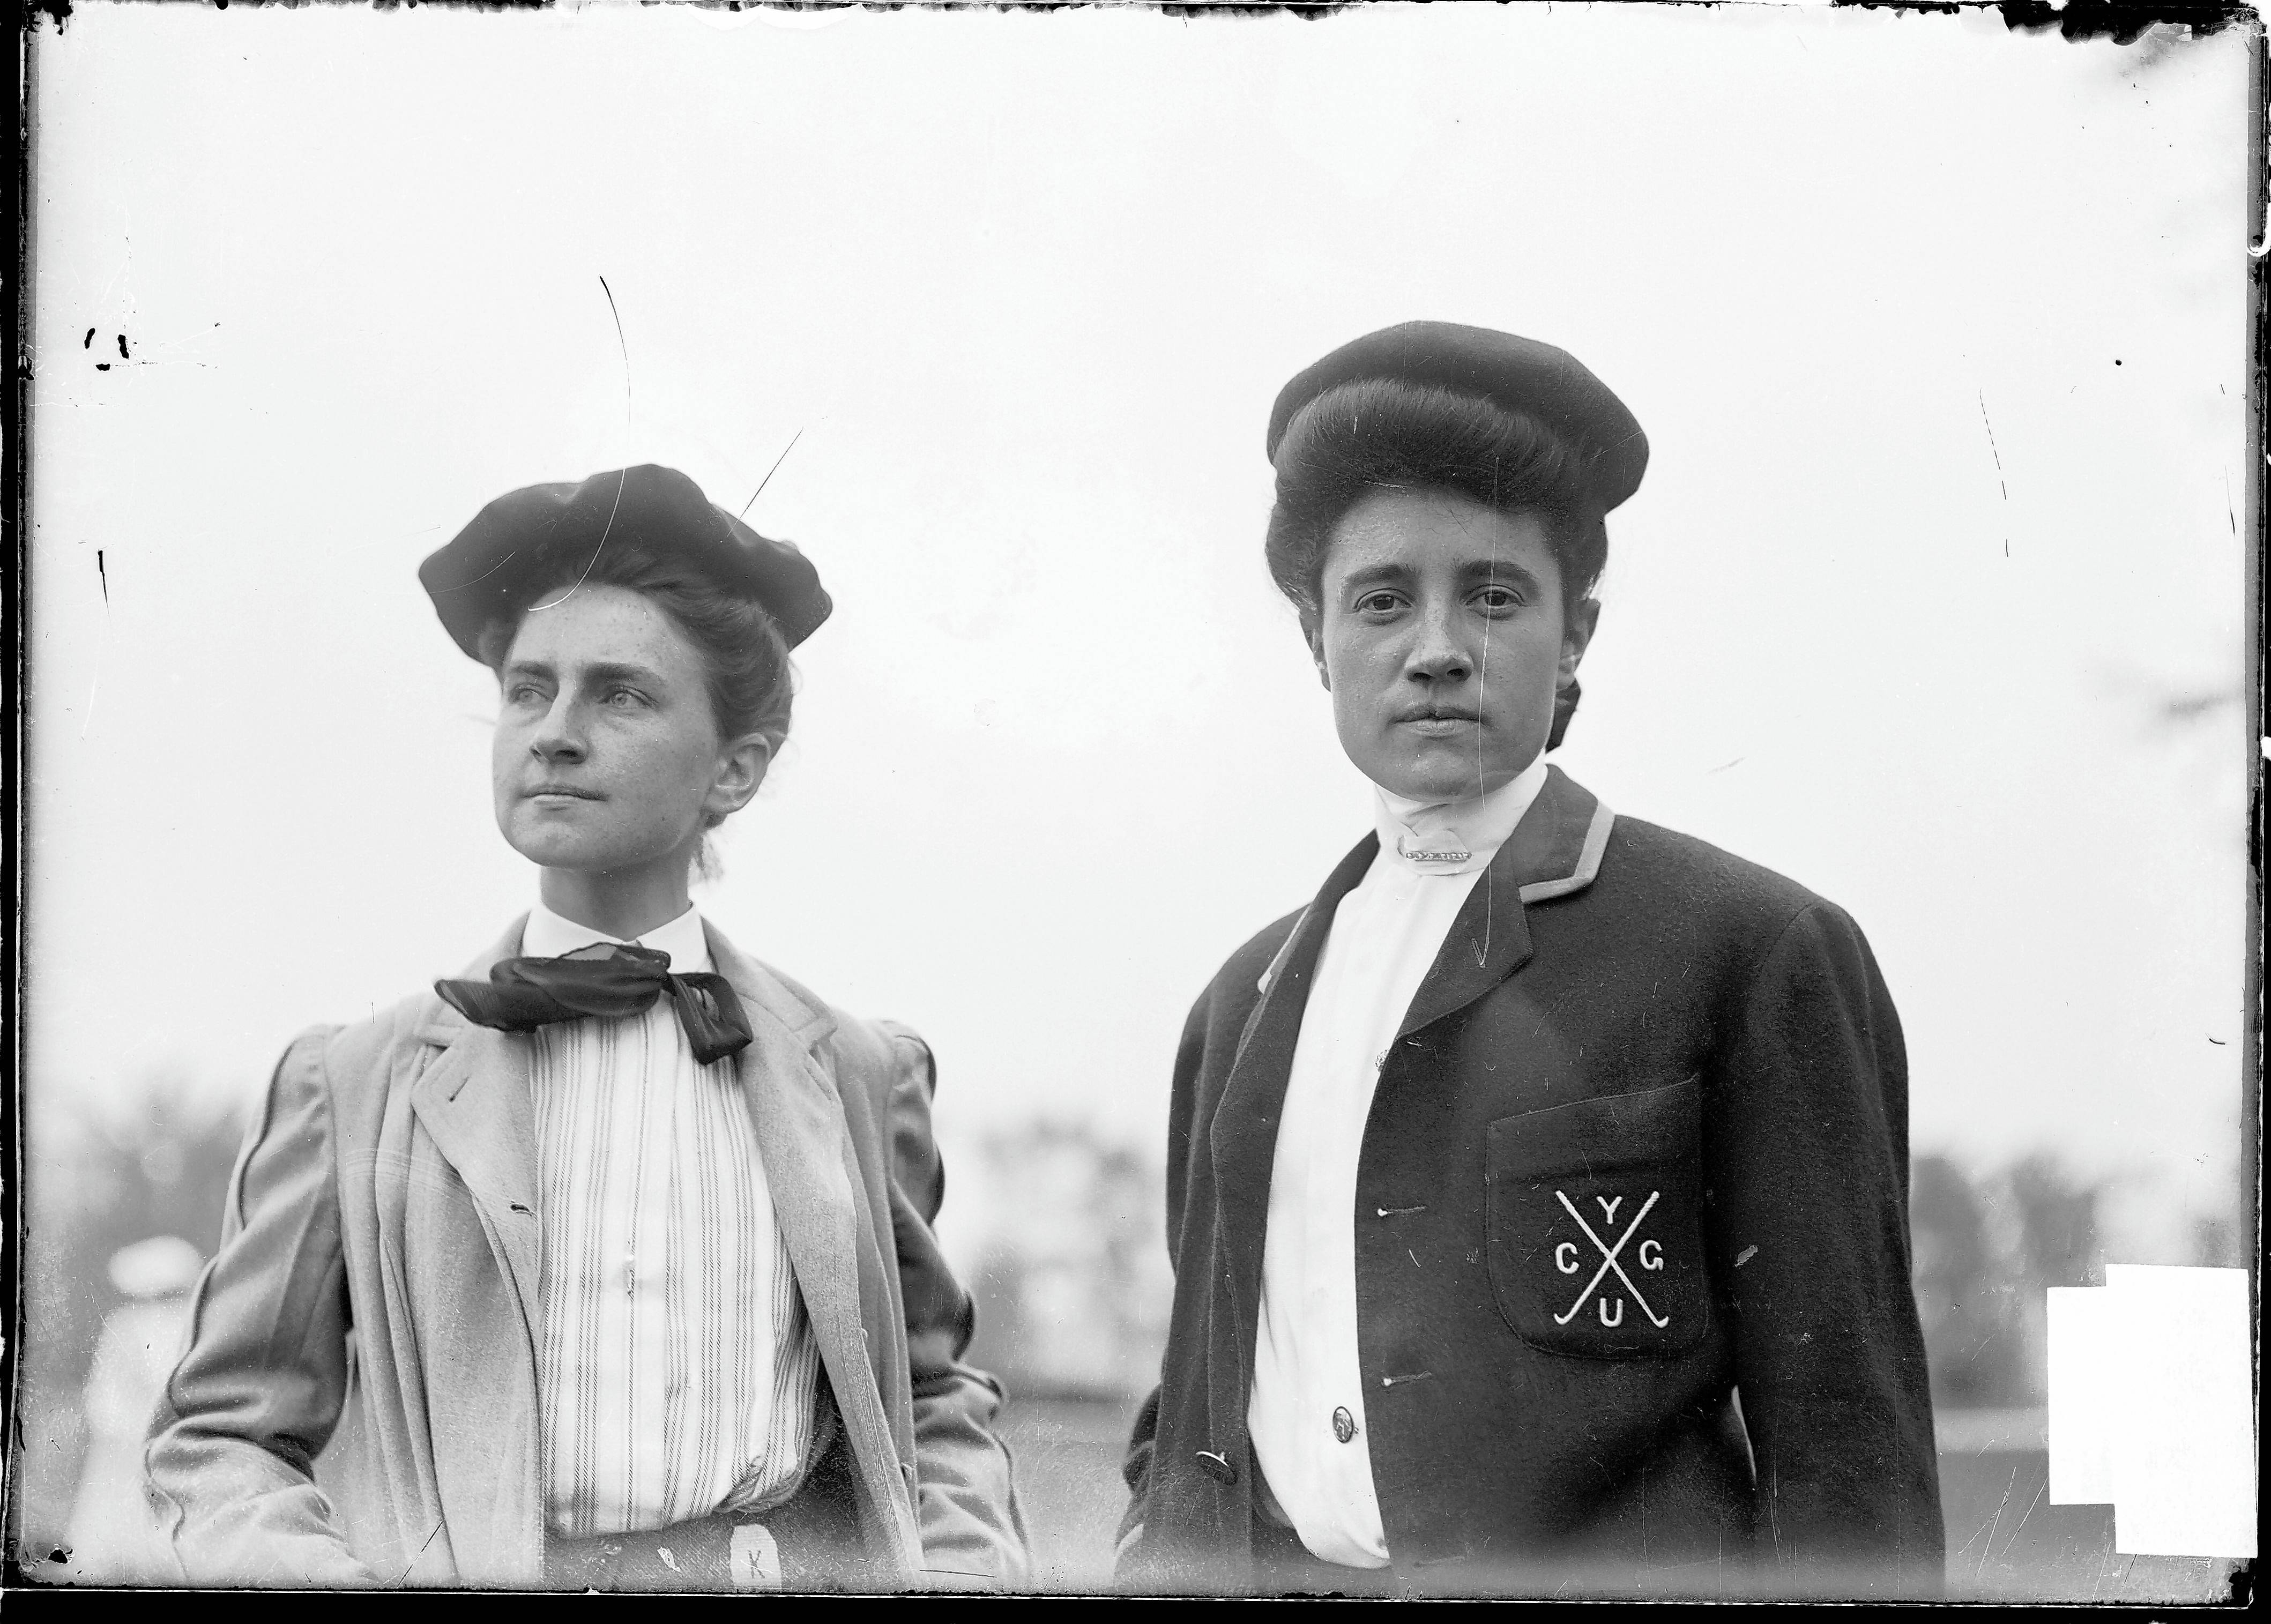 J. Anna Carpenter, left, finished second to Bessie Anthony at the 1903 U.S. Women's Amateur at Chicago Golf Club. The Wheaton course is hosting the U.S. Senior Women's Open 115 years after Anthony's victory.